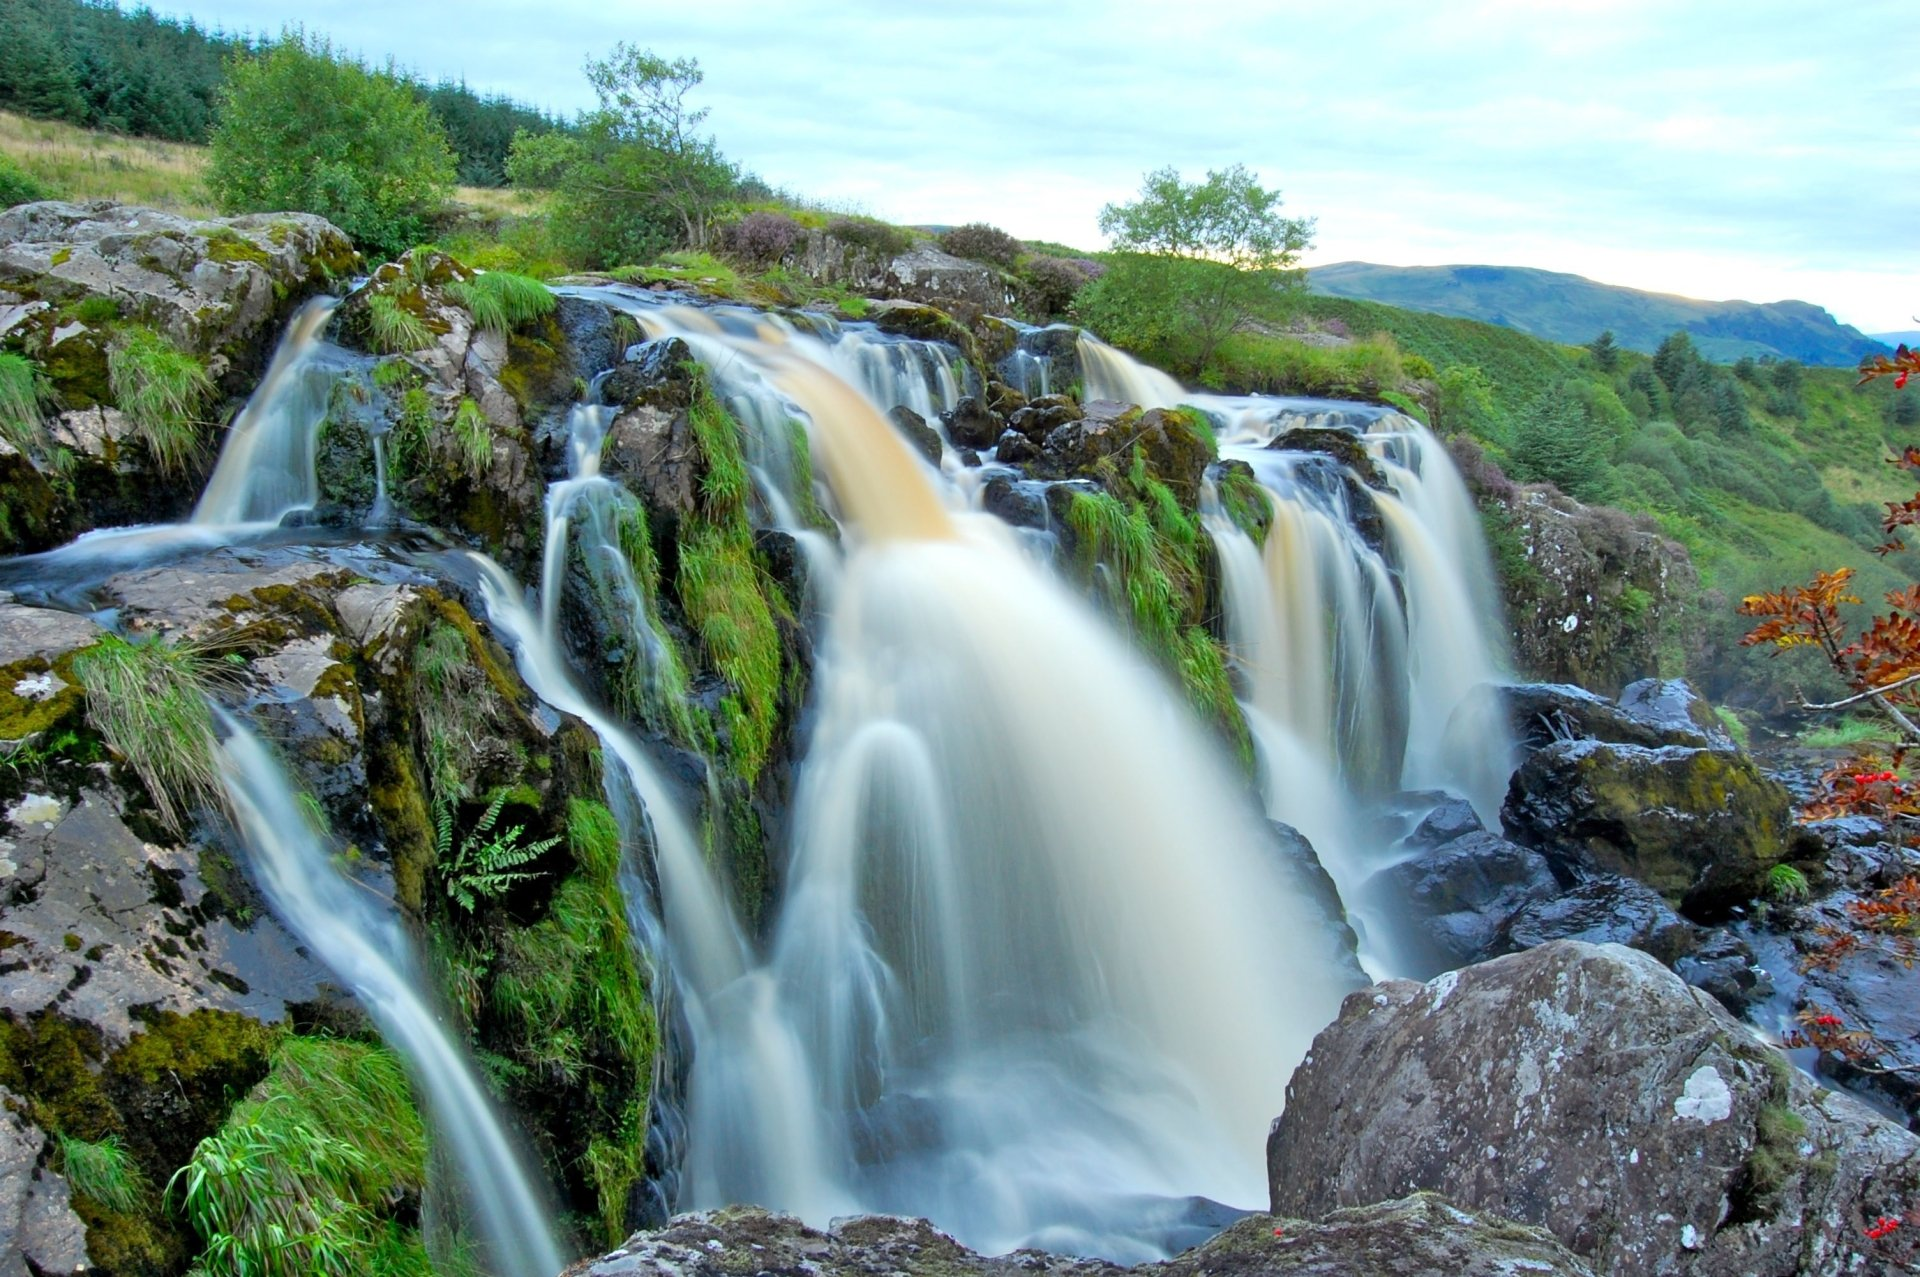 Cool Wallpapers Water Fall Loup Of Fintry Waterfall Hd Wallpaper Background Image